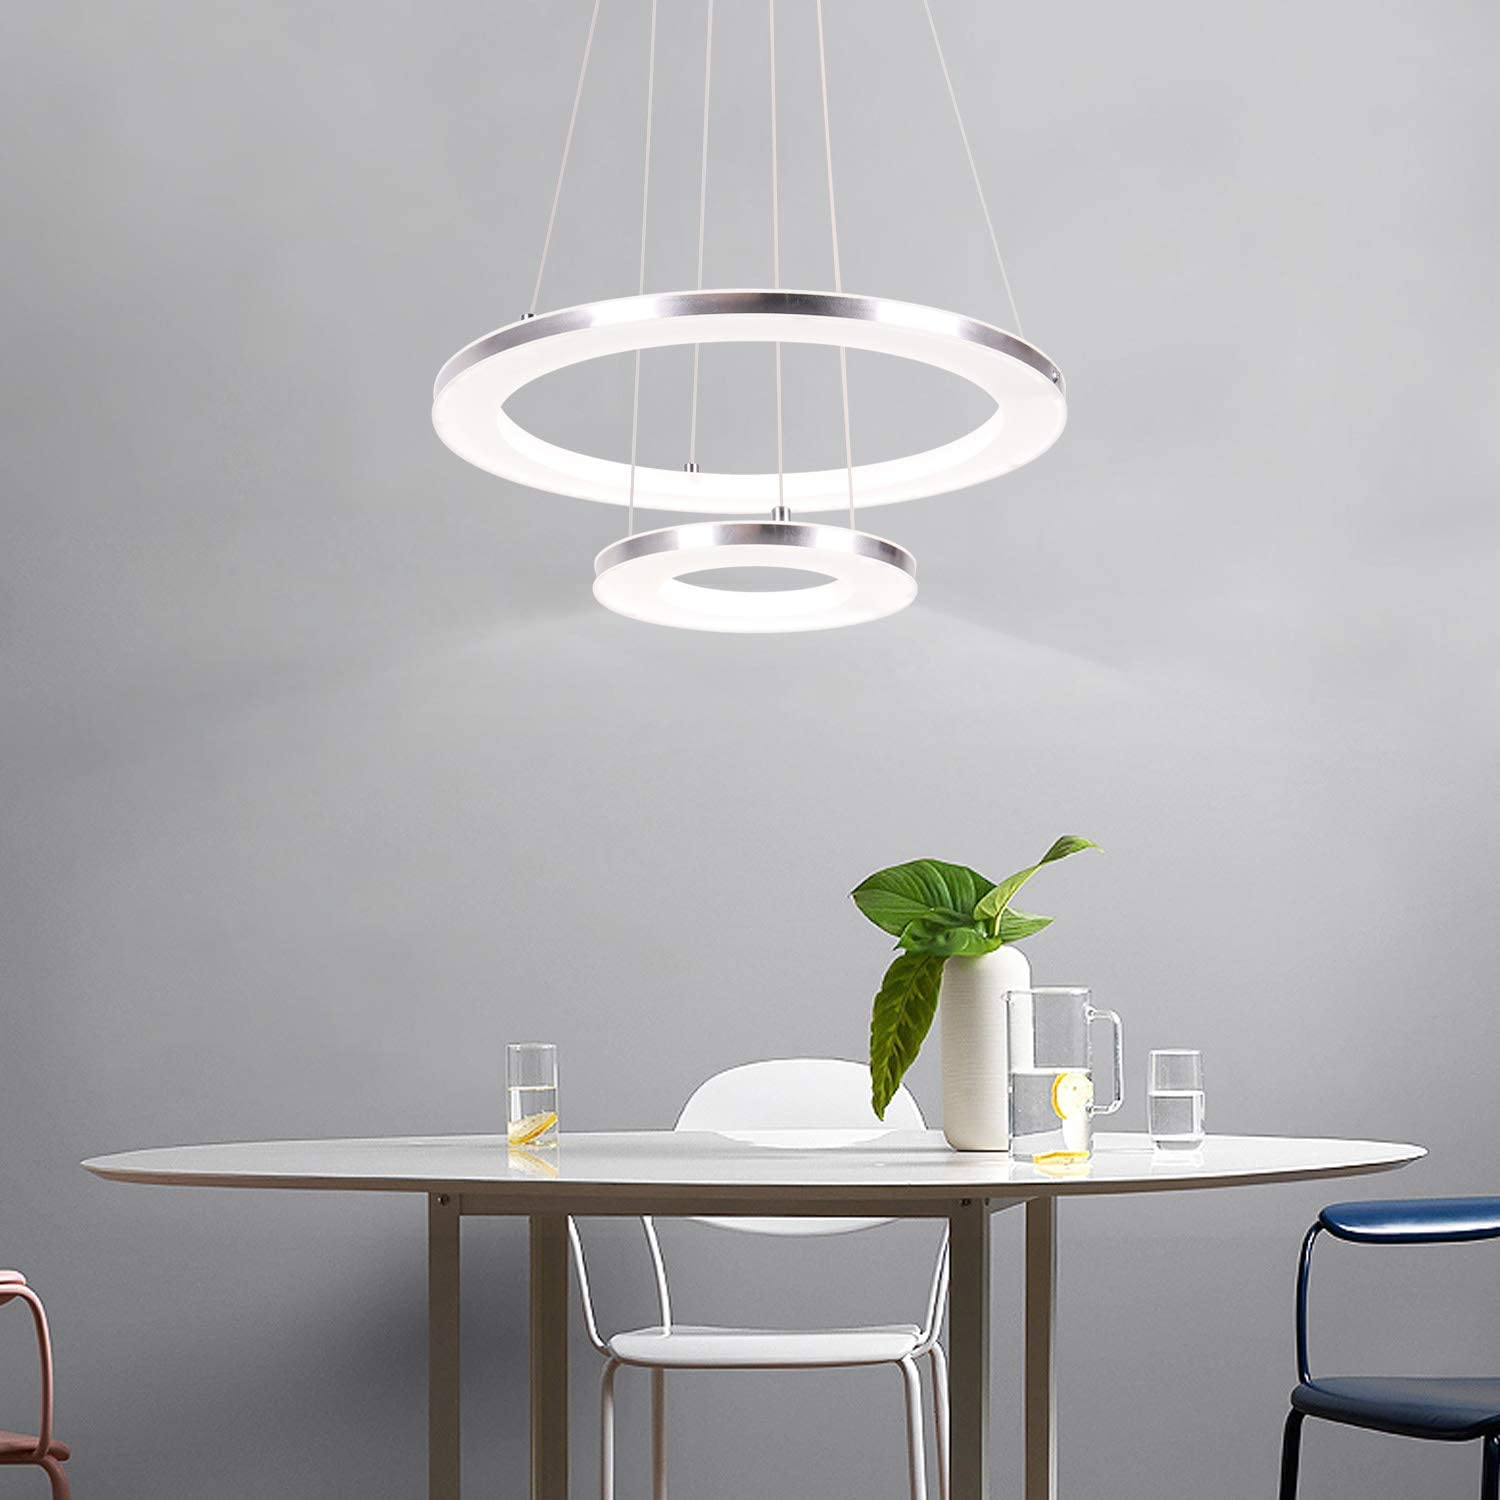 CHYING Modern LED Pendant Light with Acrylic Shade 2-Ring 30W Cool White 6500K Ceiling Light 2400LM Chandelier Adjustable Pendant Hanging Light Fixture for Kitchen Island Living Dining Room Restaurant